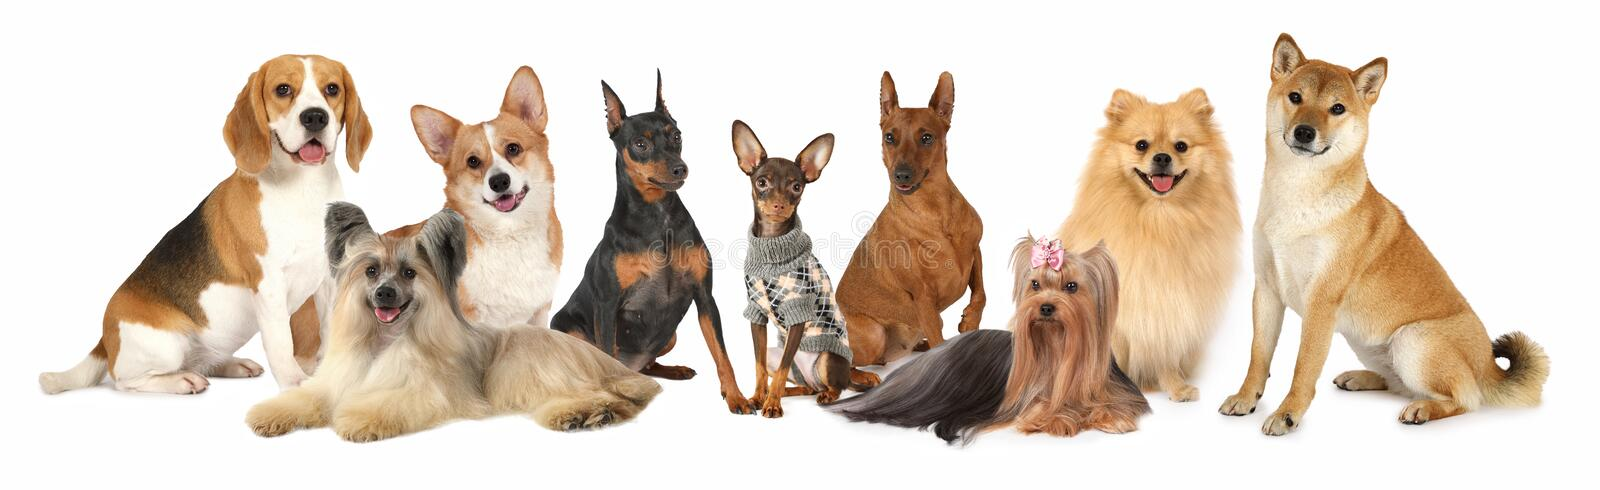 Group Of Different Large Dog Breeds Stock Photo Image Of